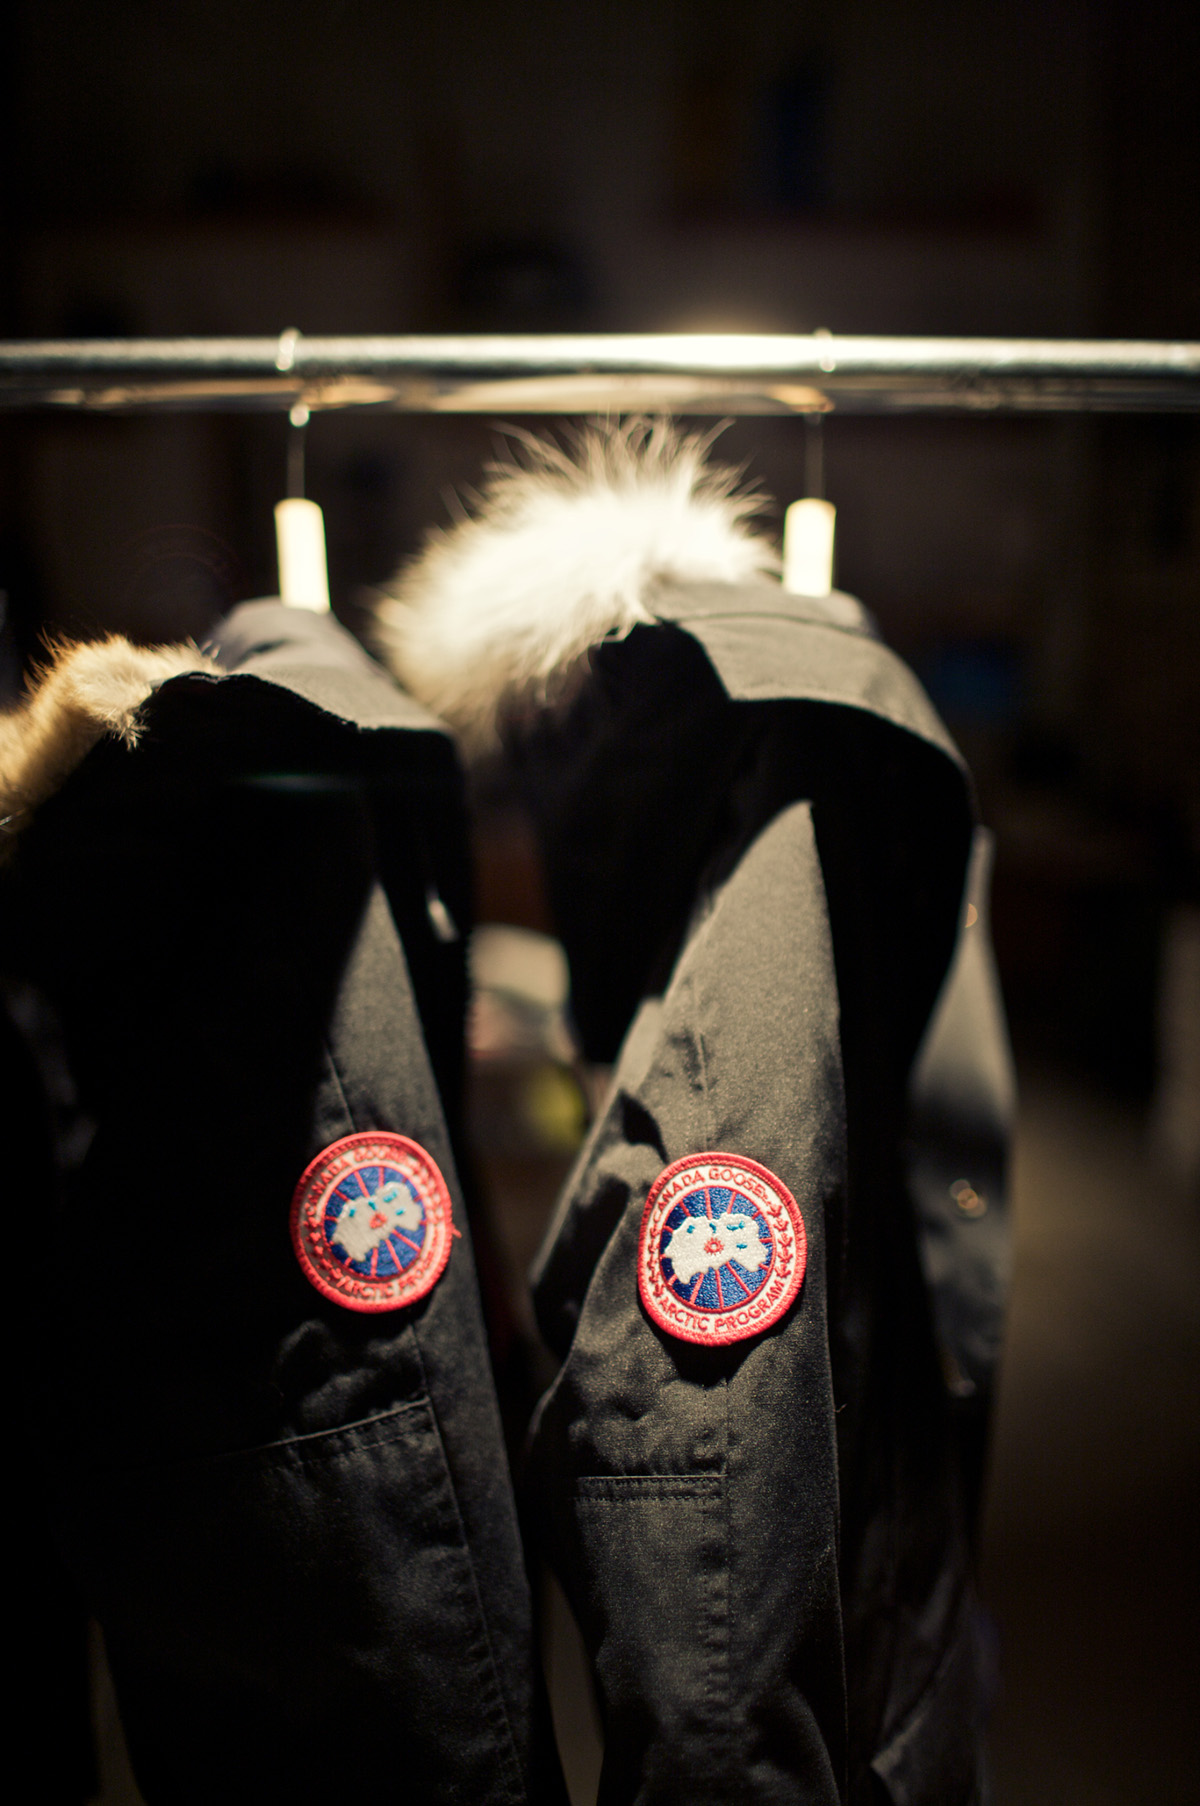 Canada Goose langford parka online price - BU Police: Stop Stealing Each Other's Canada Goose Jackets